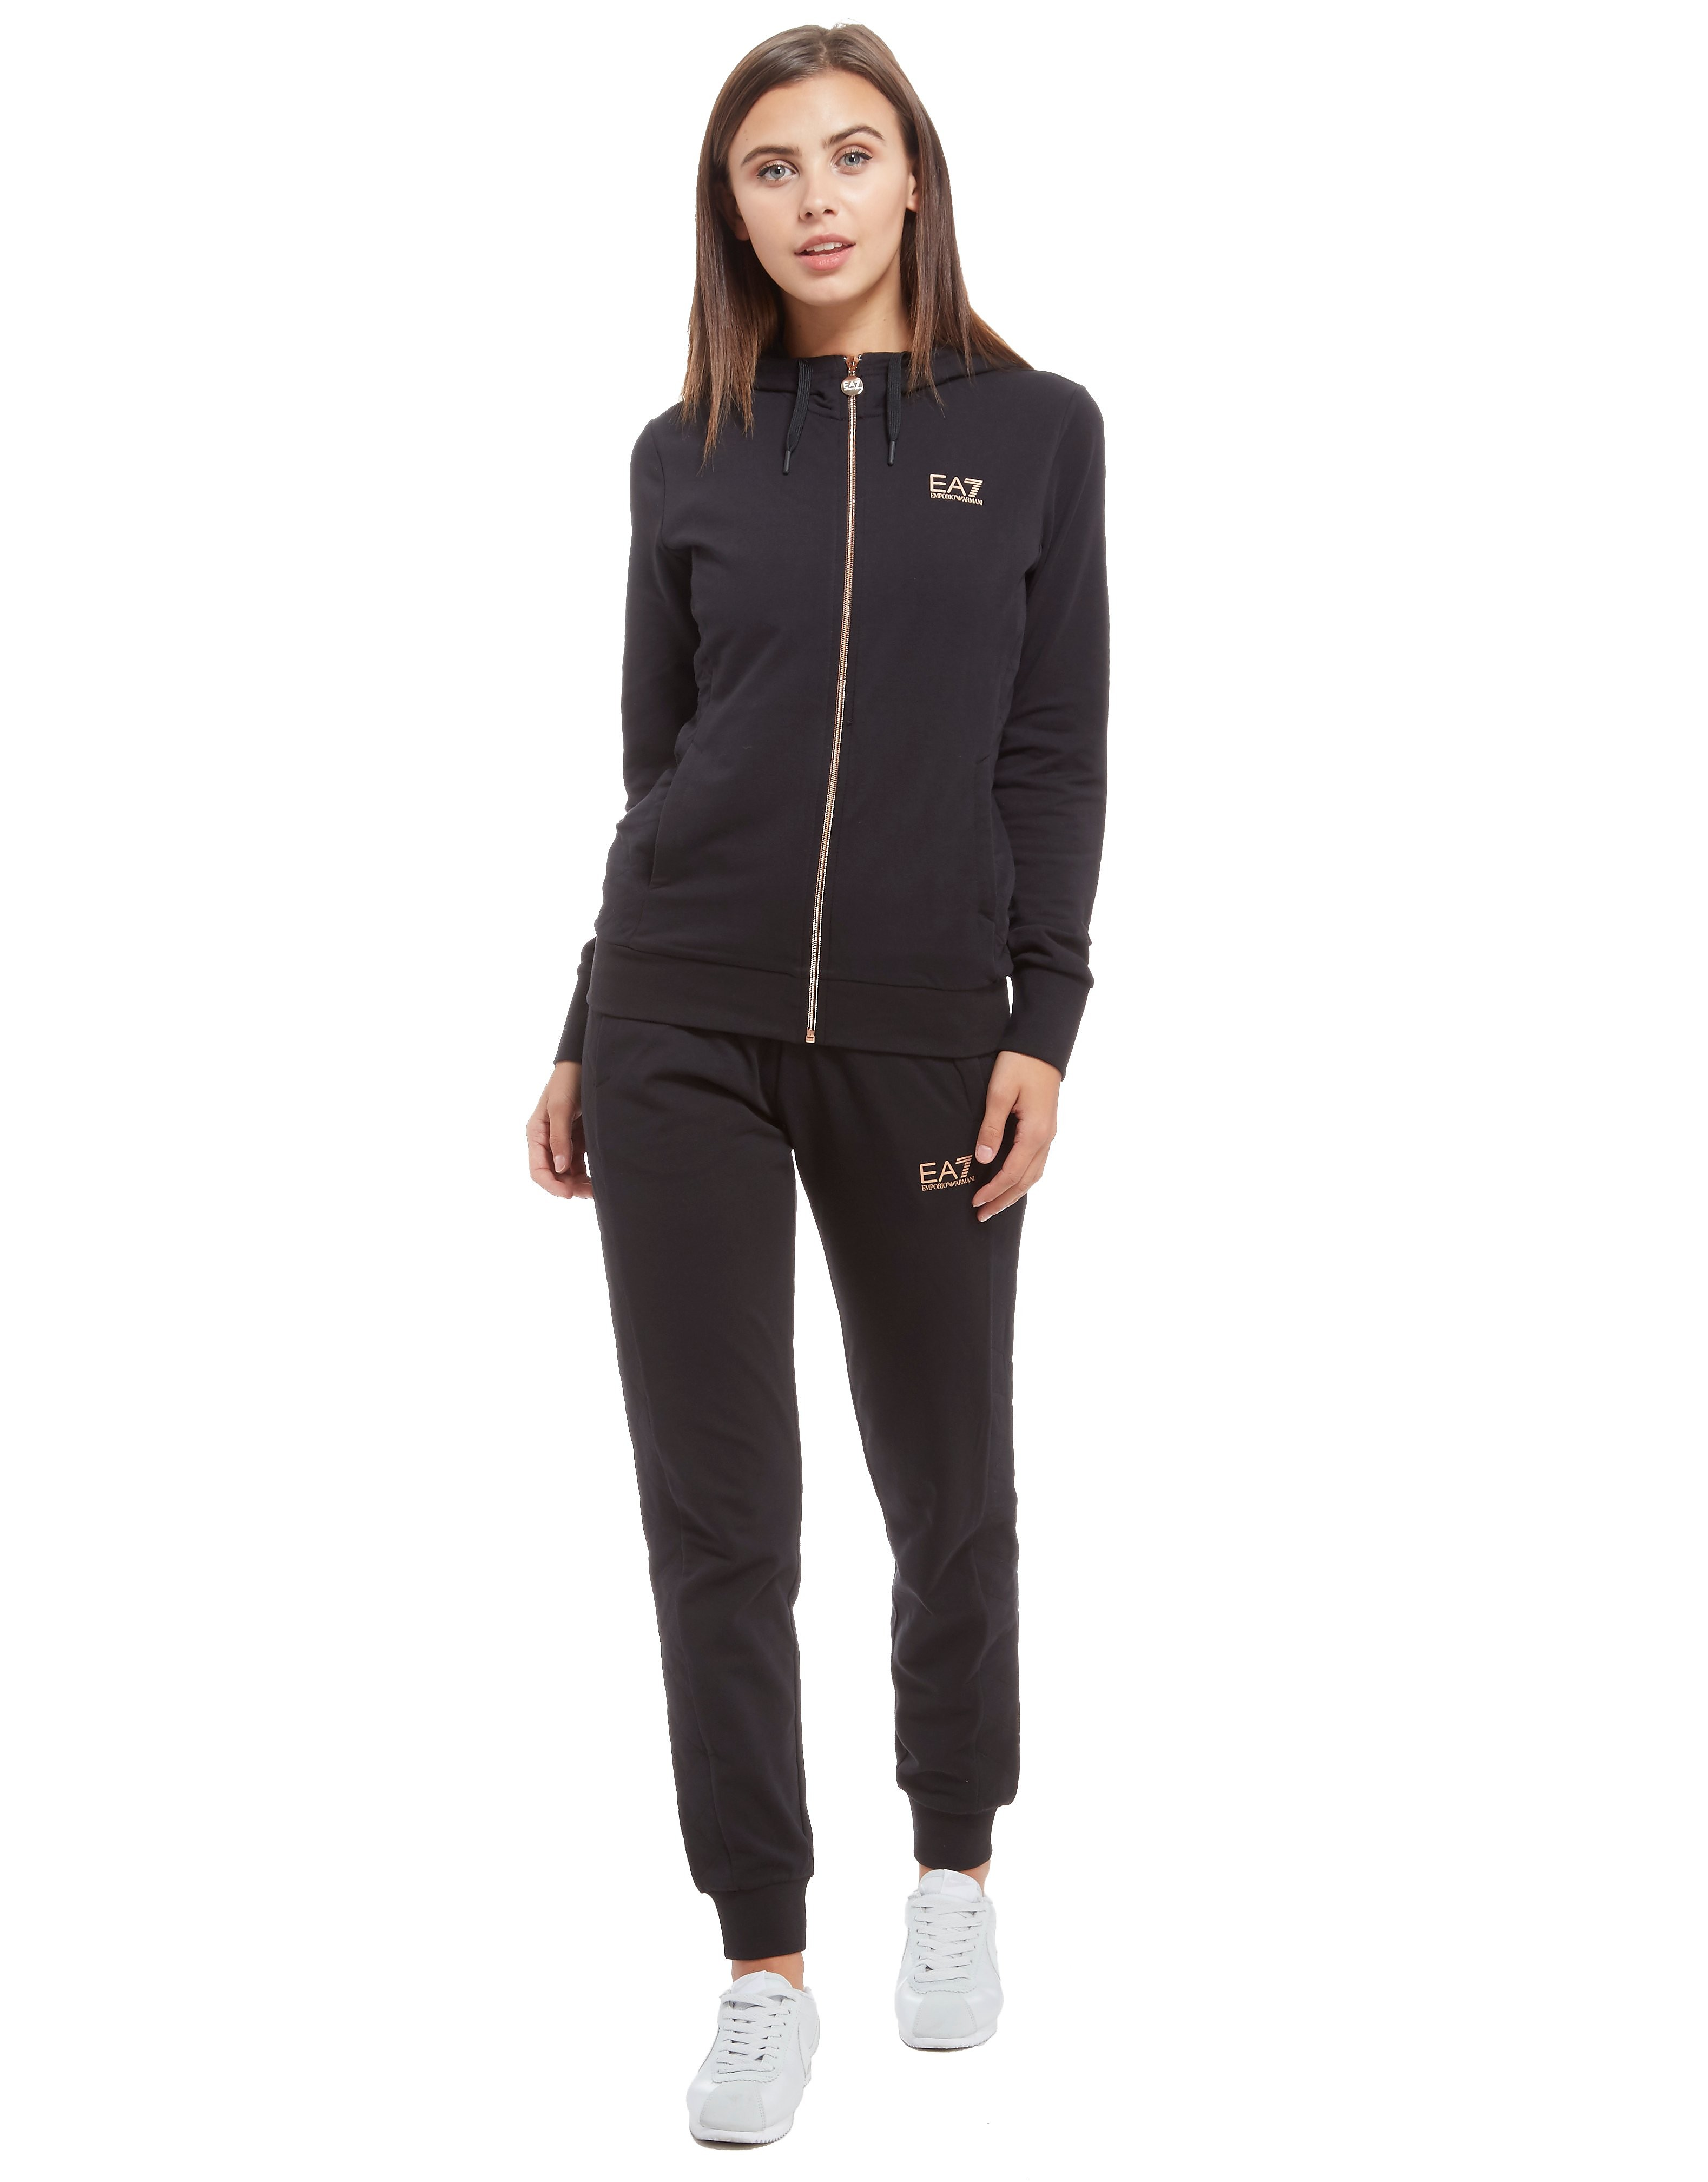 Emporio Armani EA7 Quilted Tracksuit